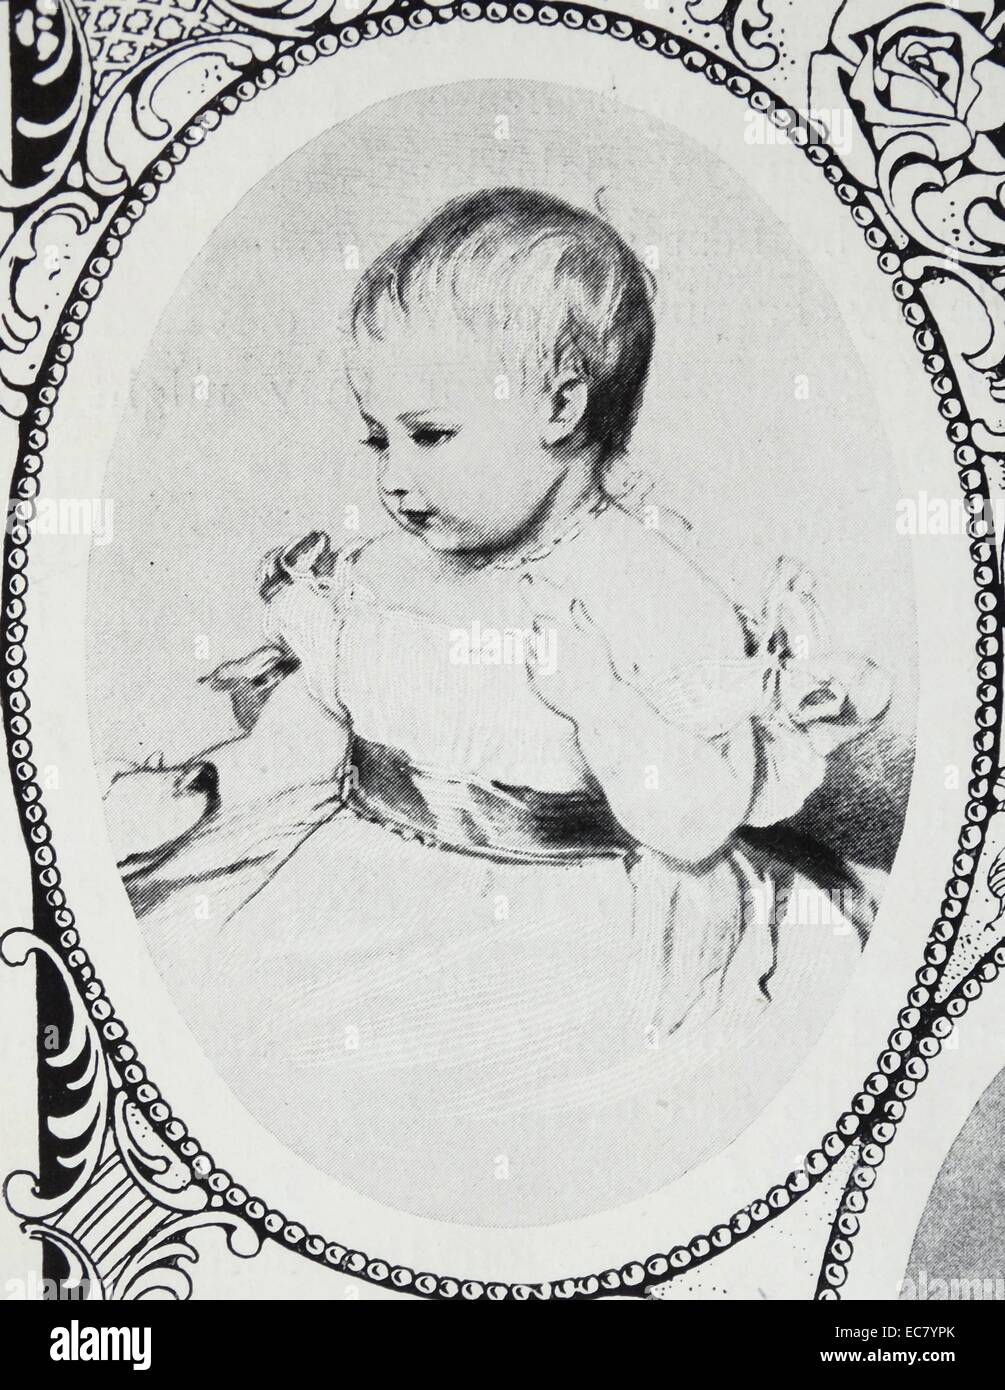 Victoria; Princess Royal (21 November 1840 – 5 August 1901) eldest child of Queen Victoria of the United Kingdom Stock Photo